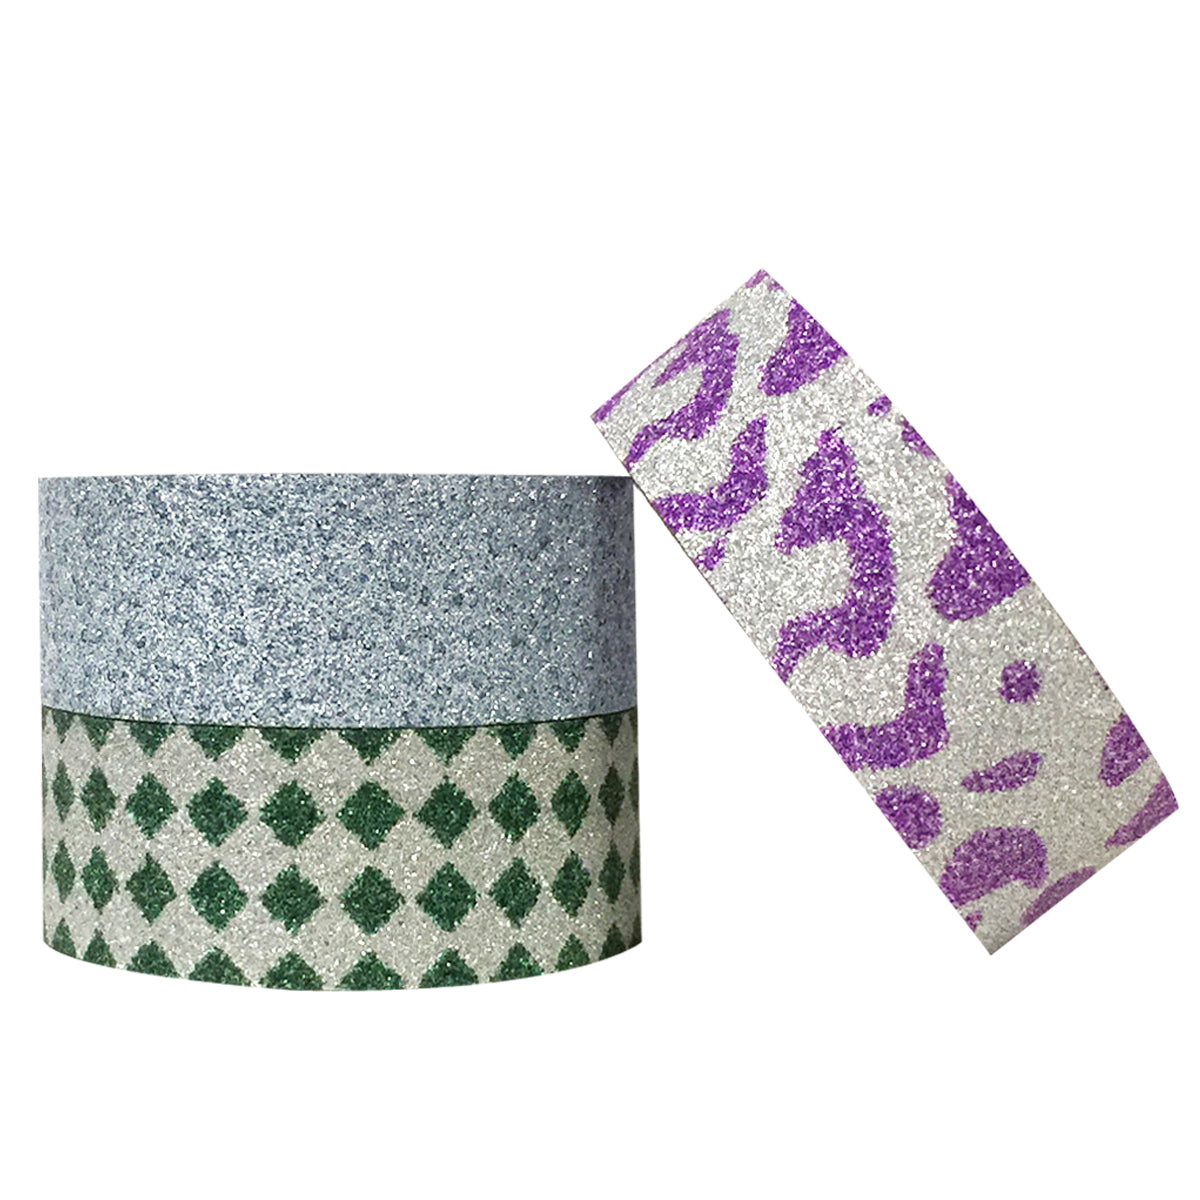 Wrapables Leopards and Emeralds Washi Masking Tape (set of 3)